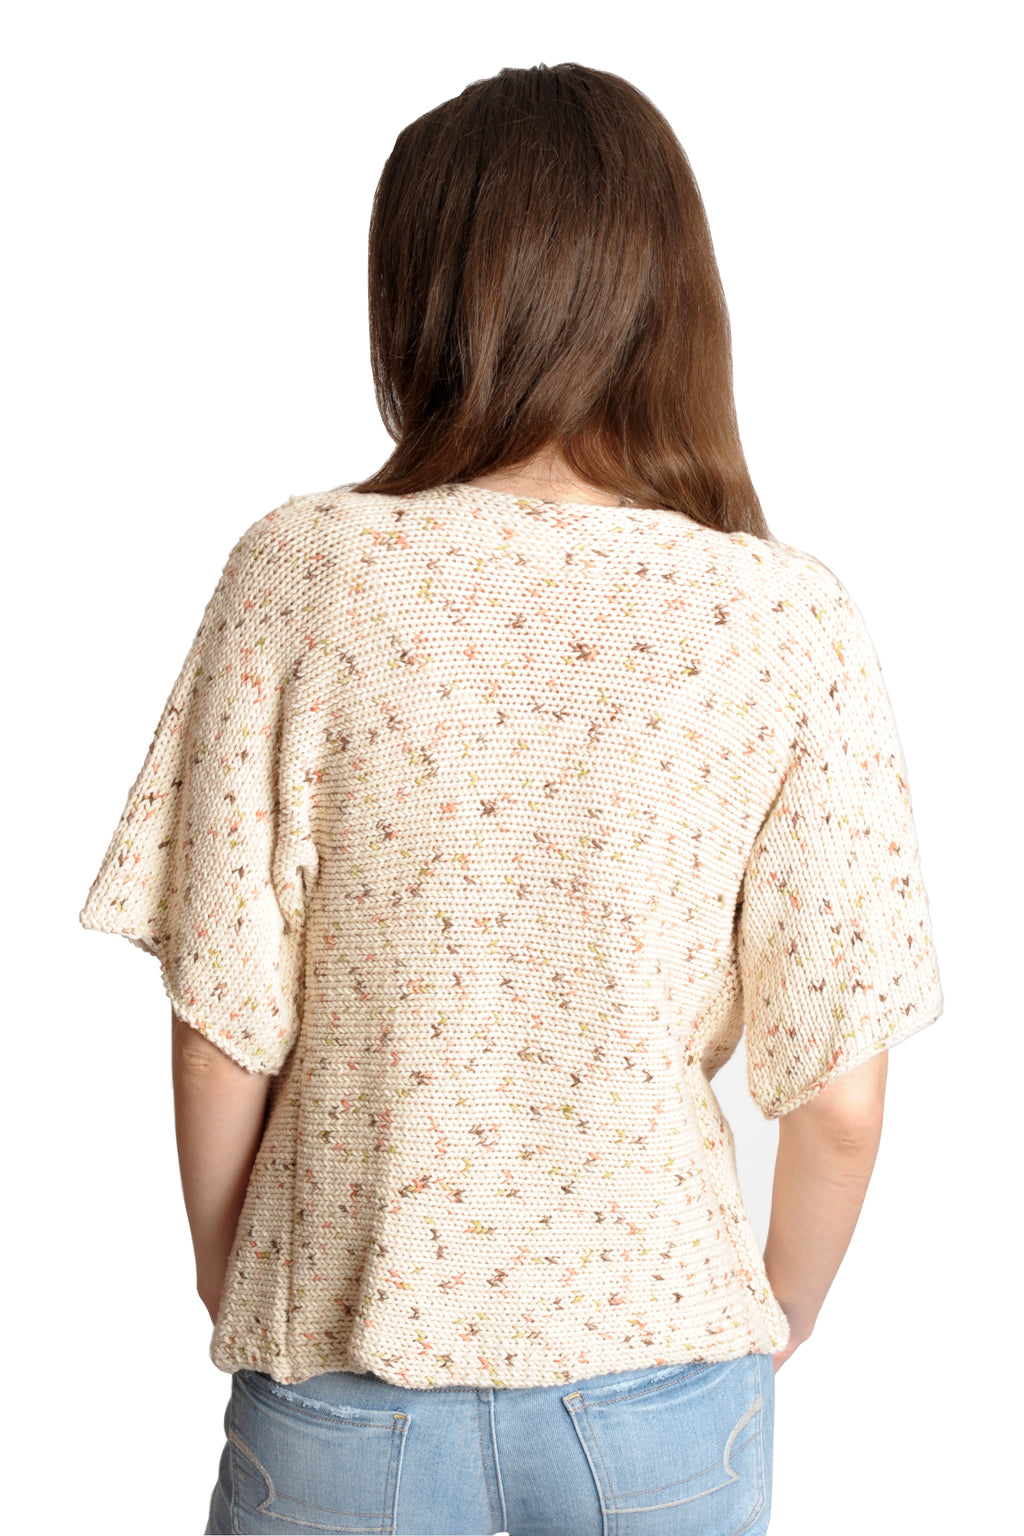 SONOMA PRINT COTTON TWISTER TOP